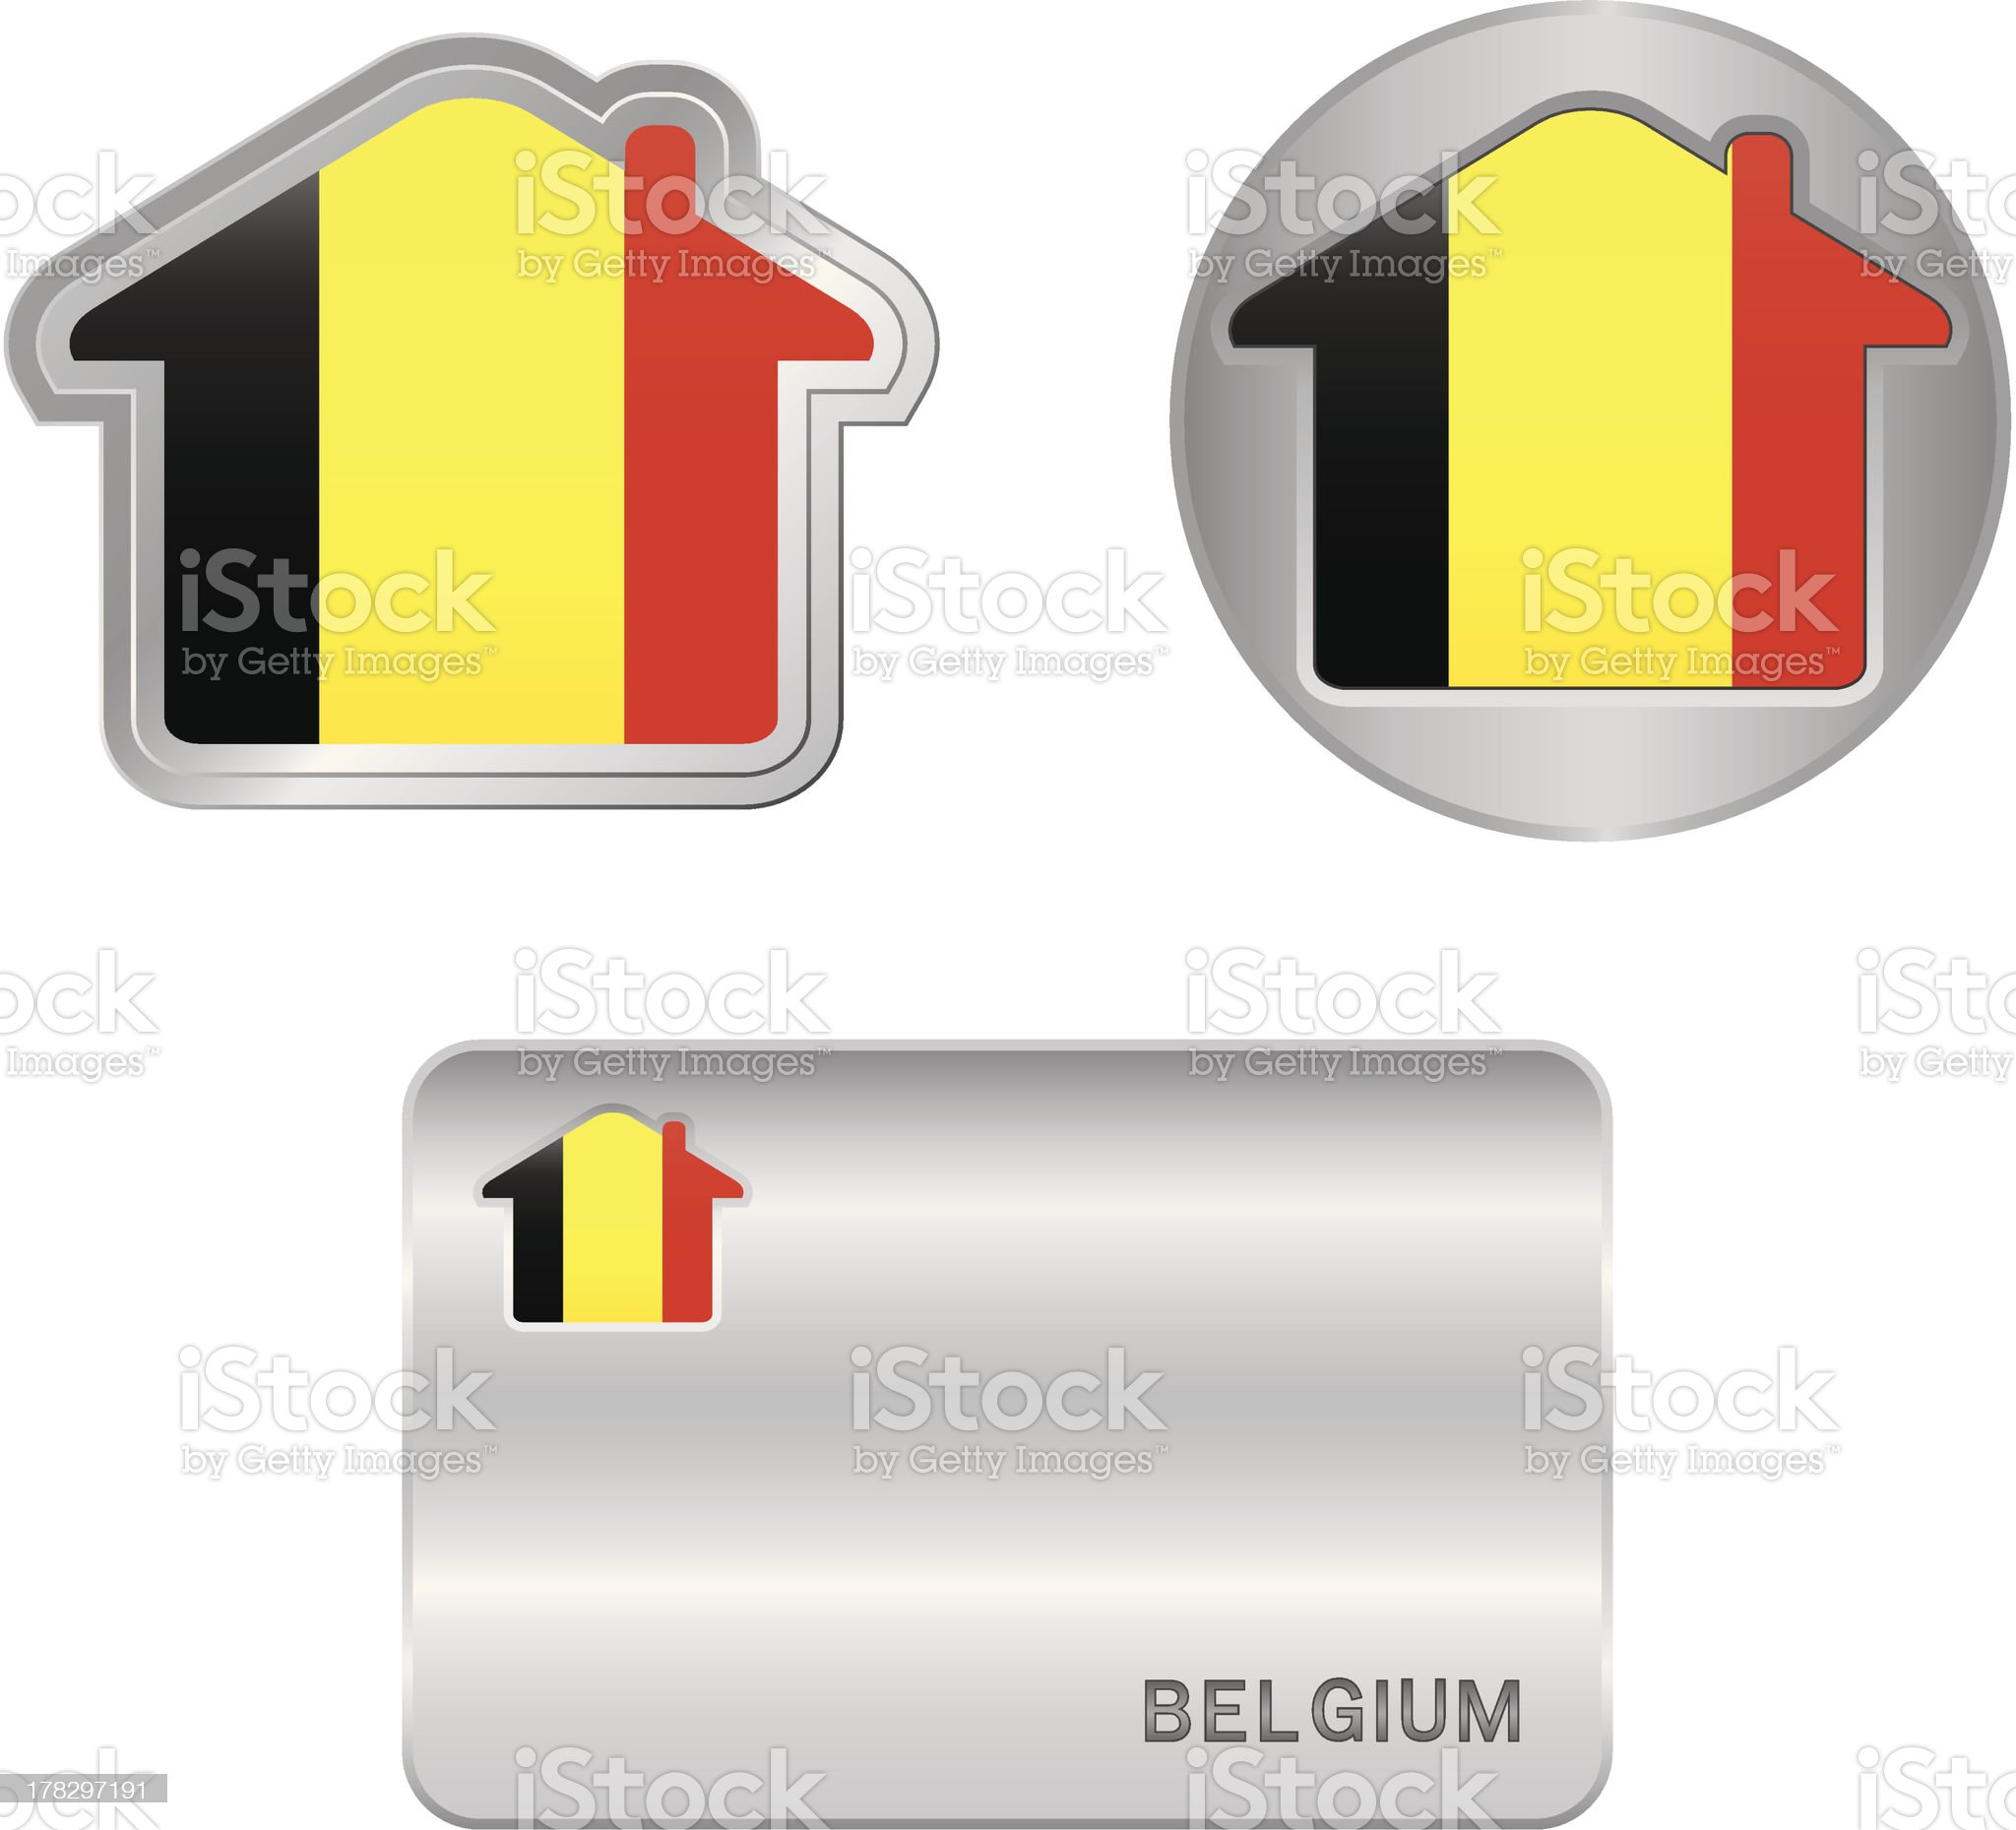 Home icon on the Belgium flag royalty-free stock vector art